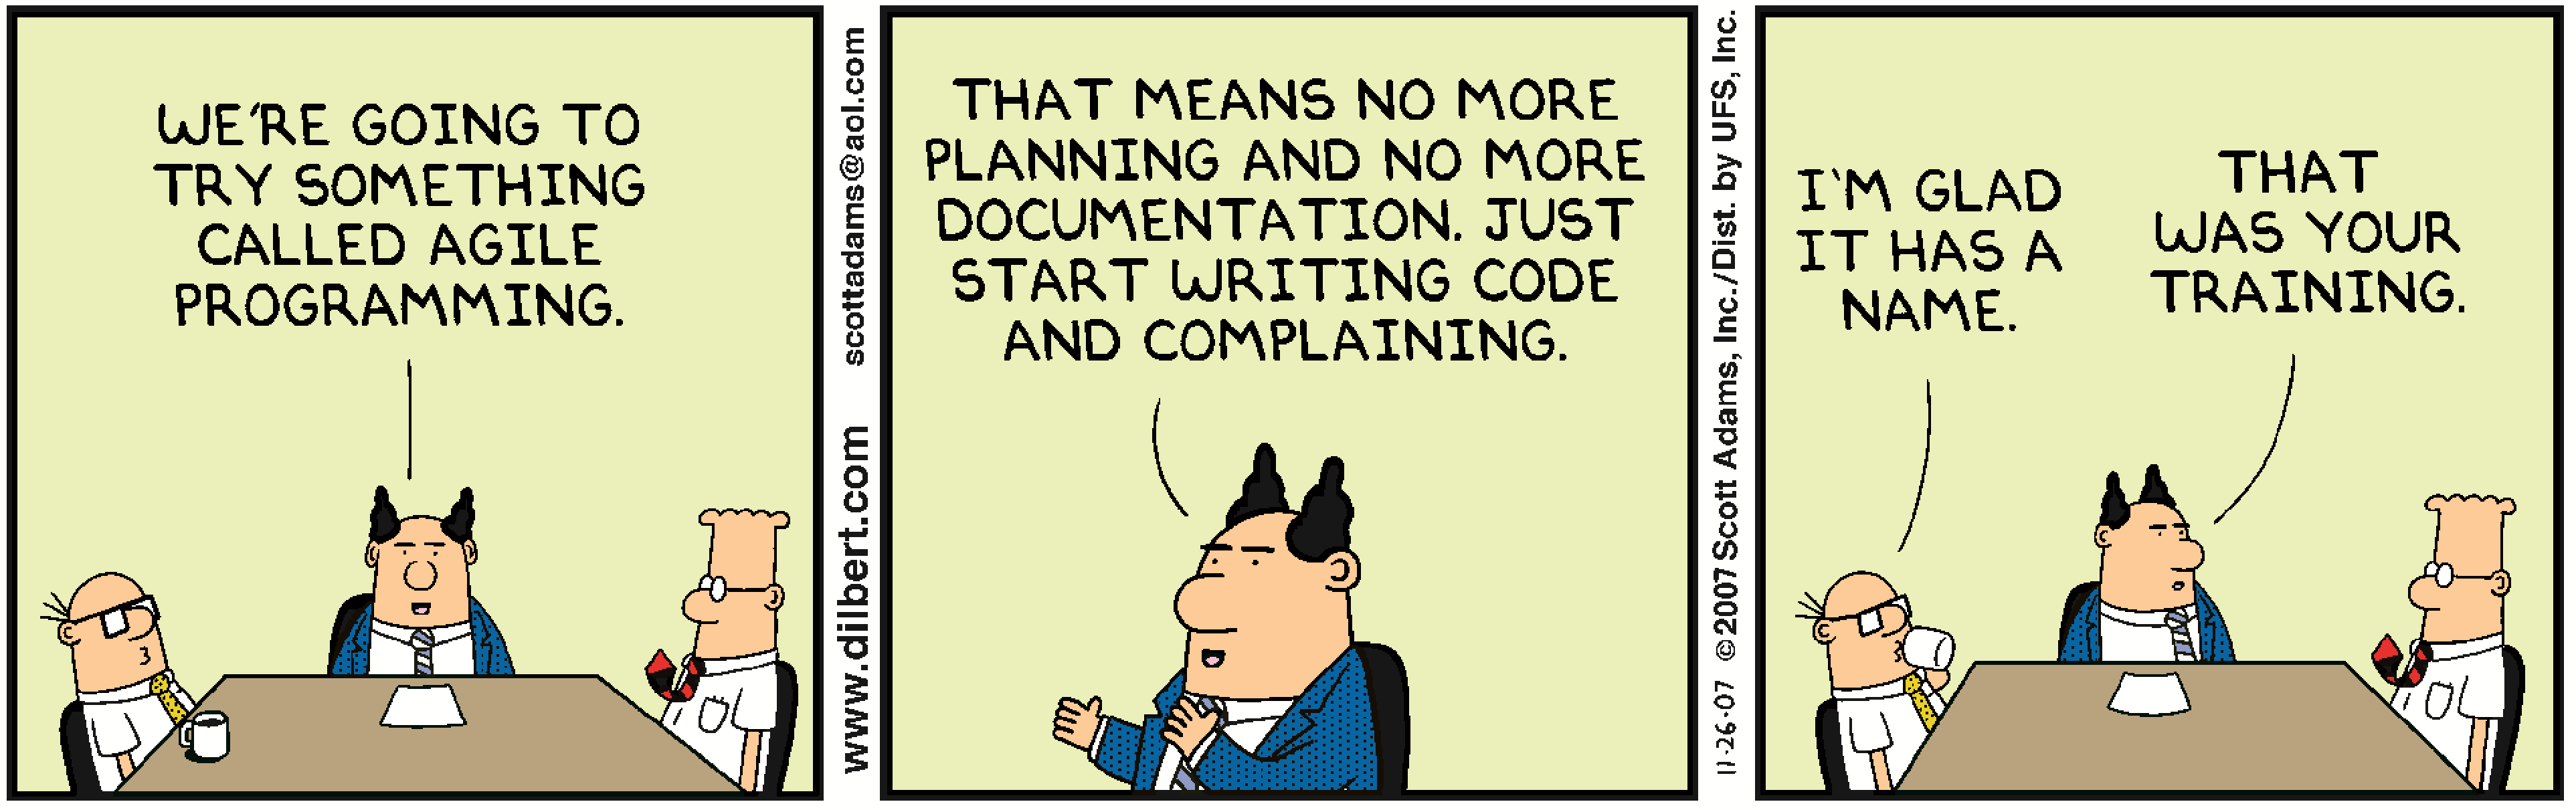 Dilbert - Training Agile Programming